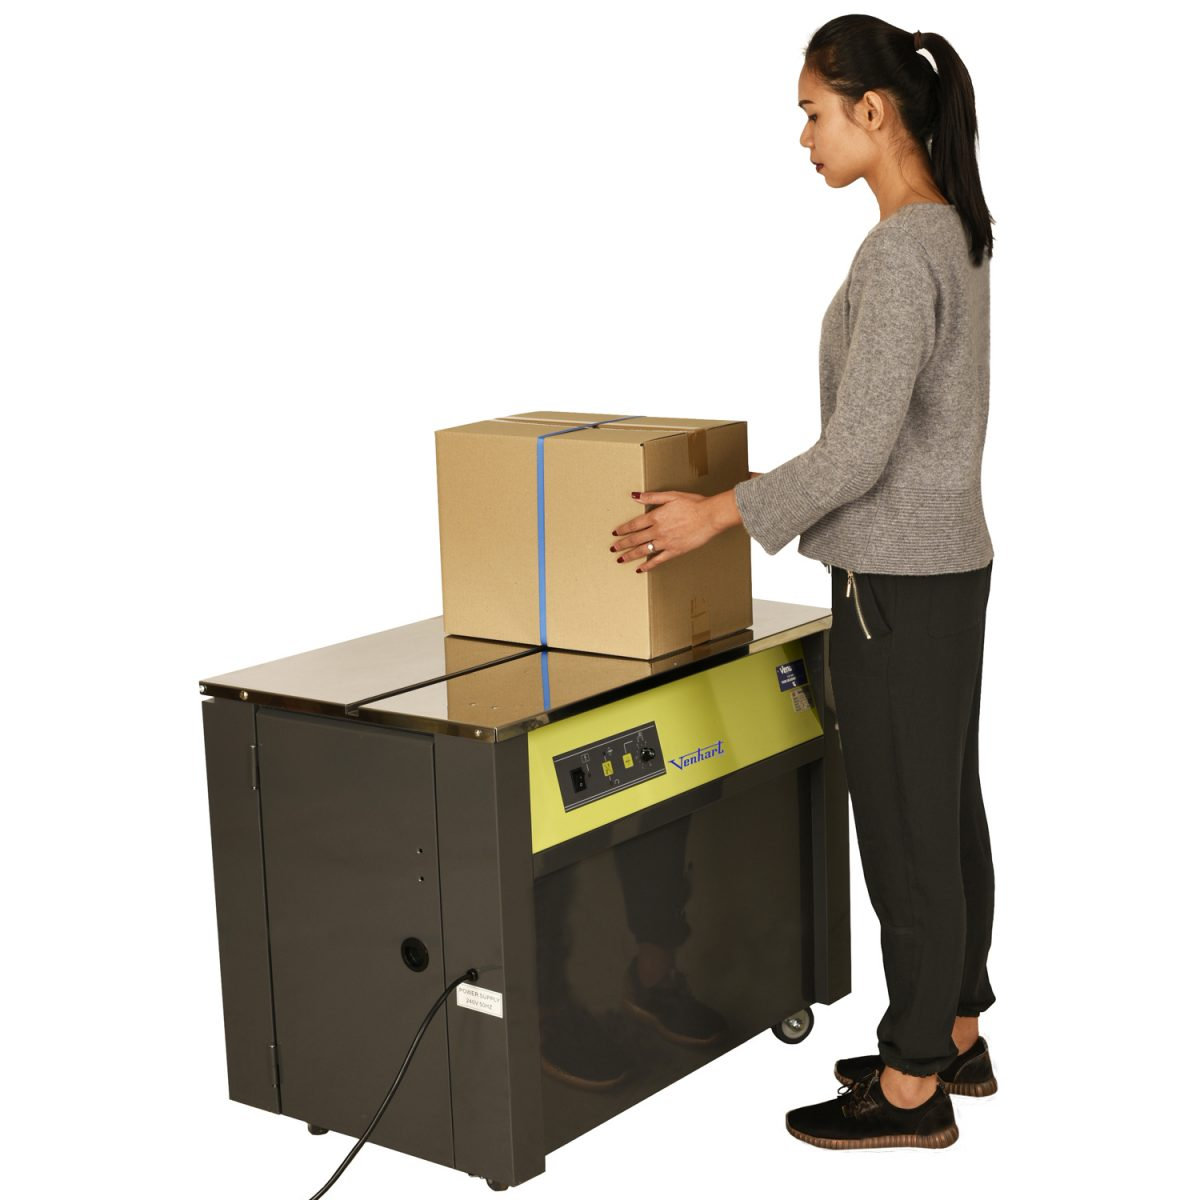 Choosing the right Strapping & Strapping Machine for your business